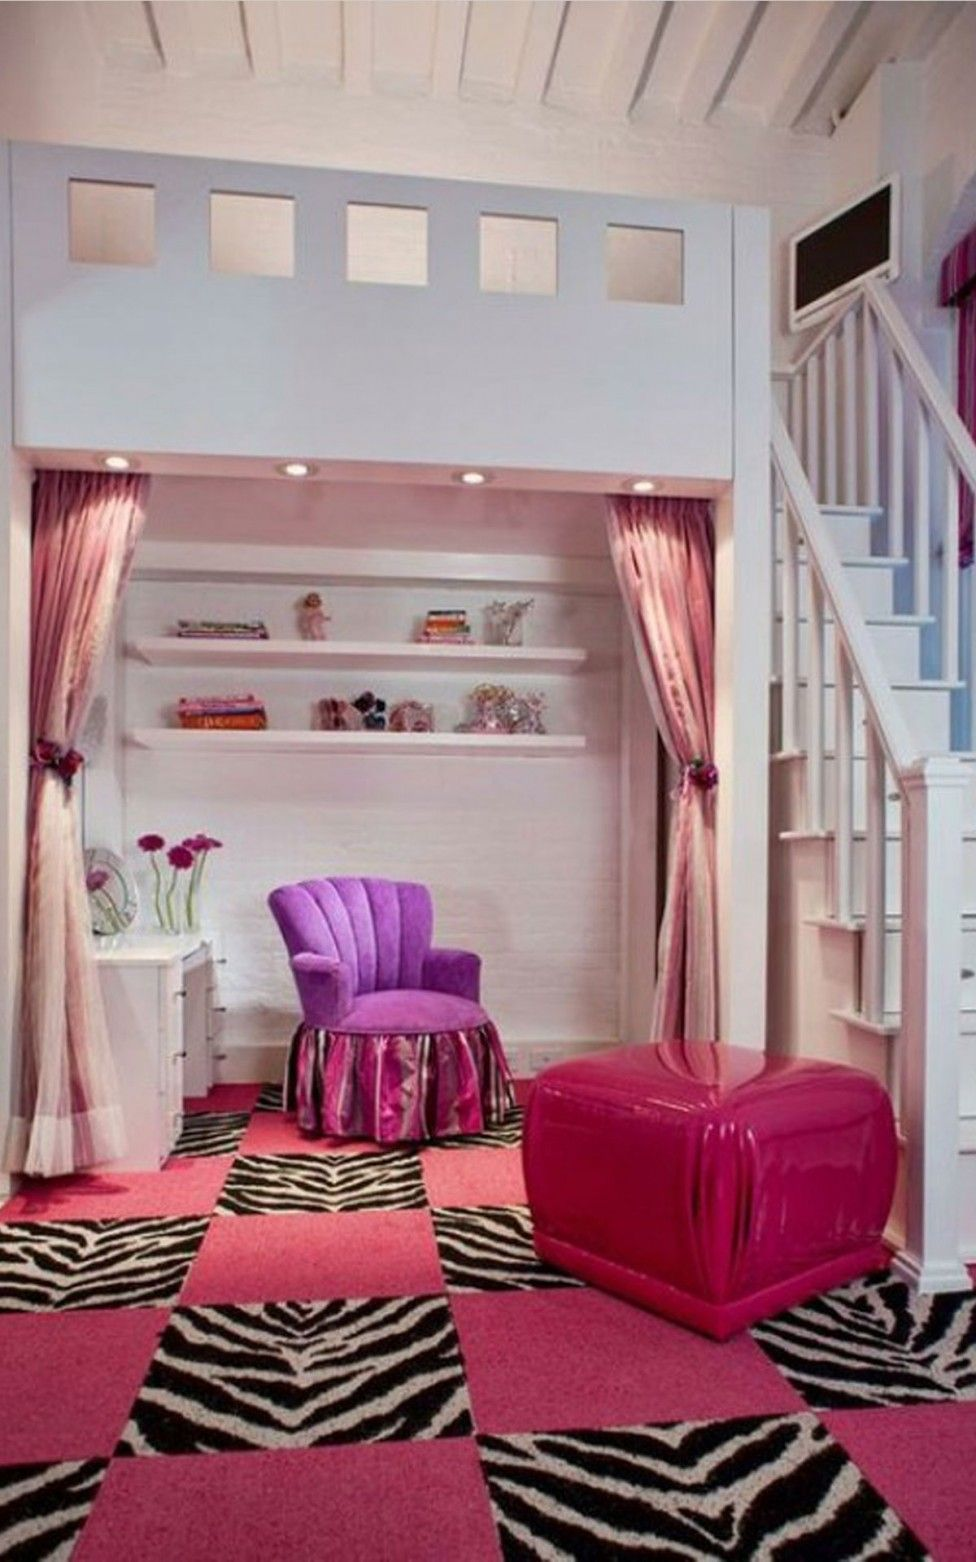 Small room ideas for girls with cute color bedroom 22 for Room decor ideas teenage girl